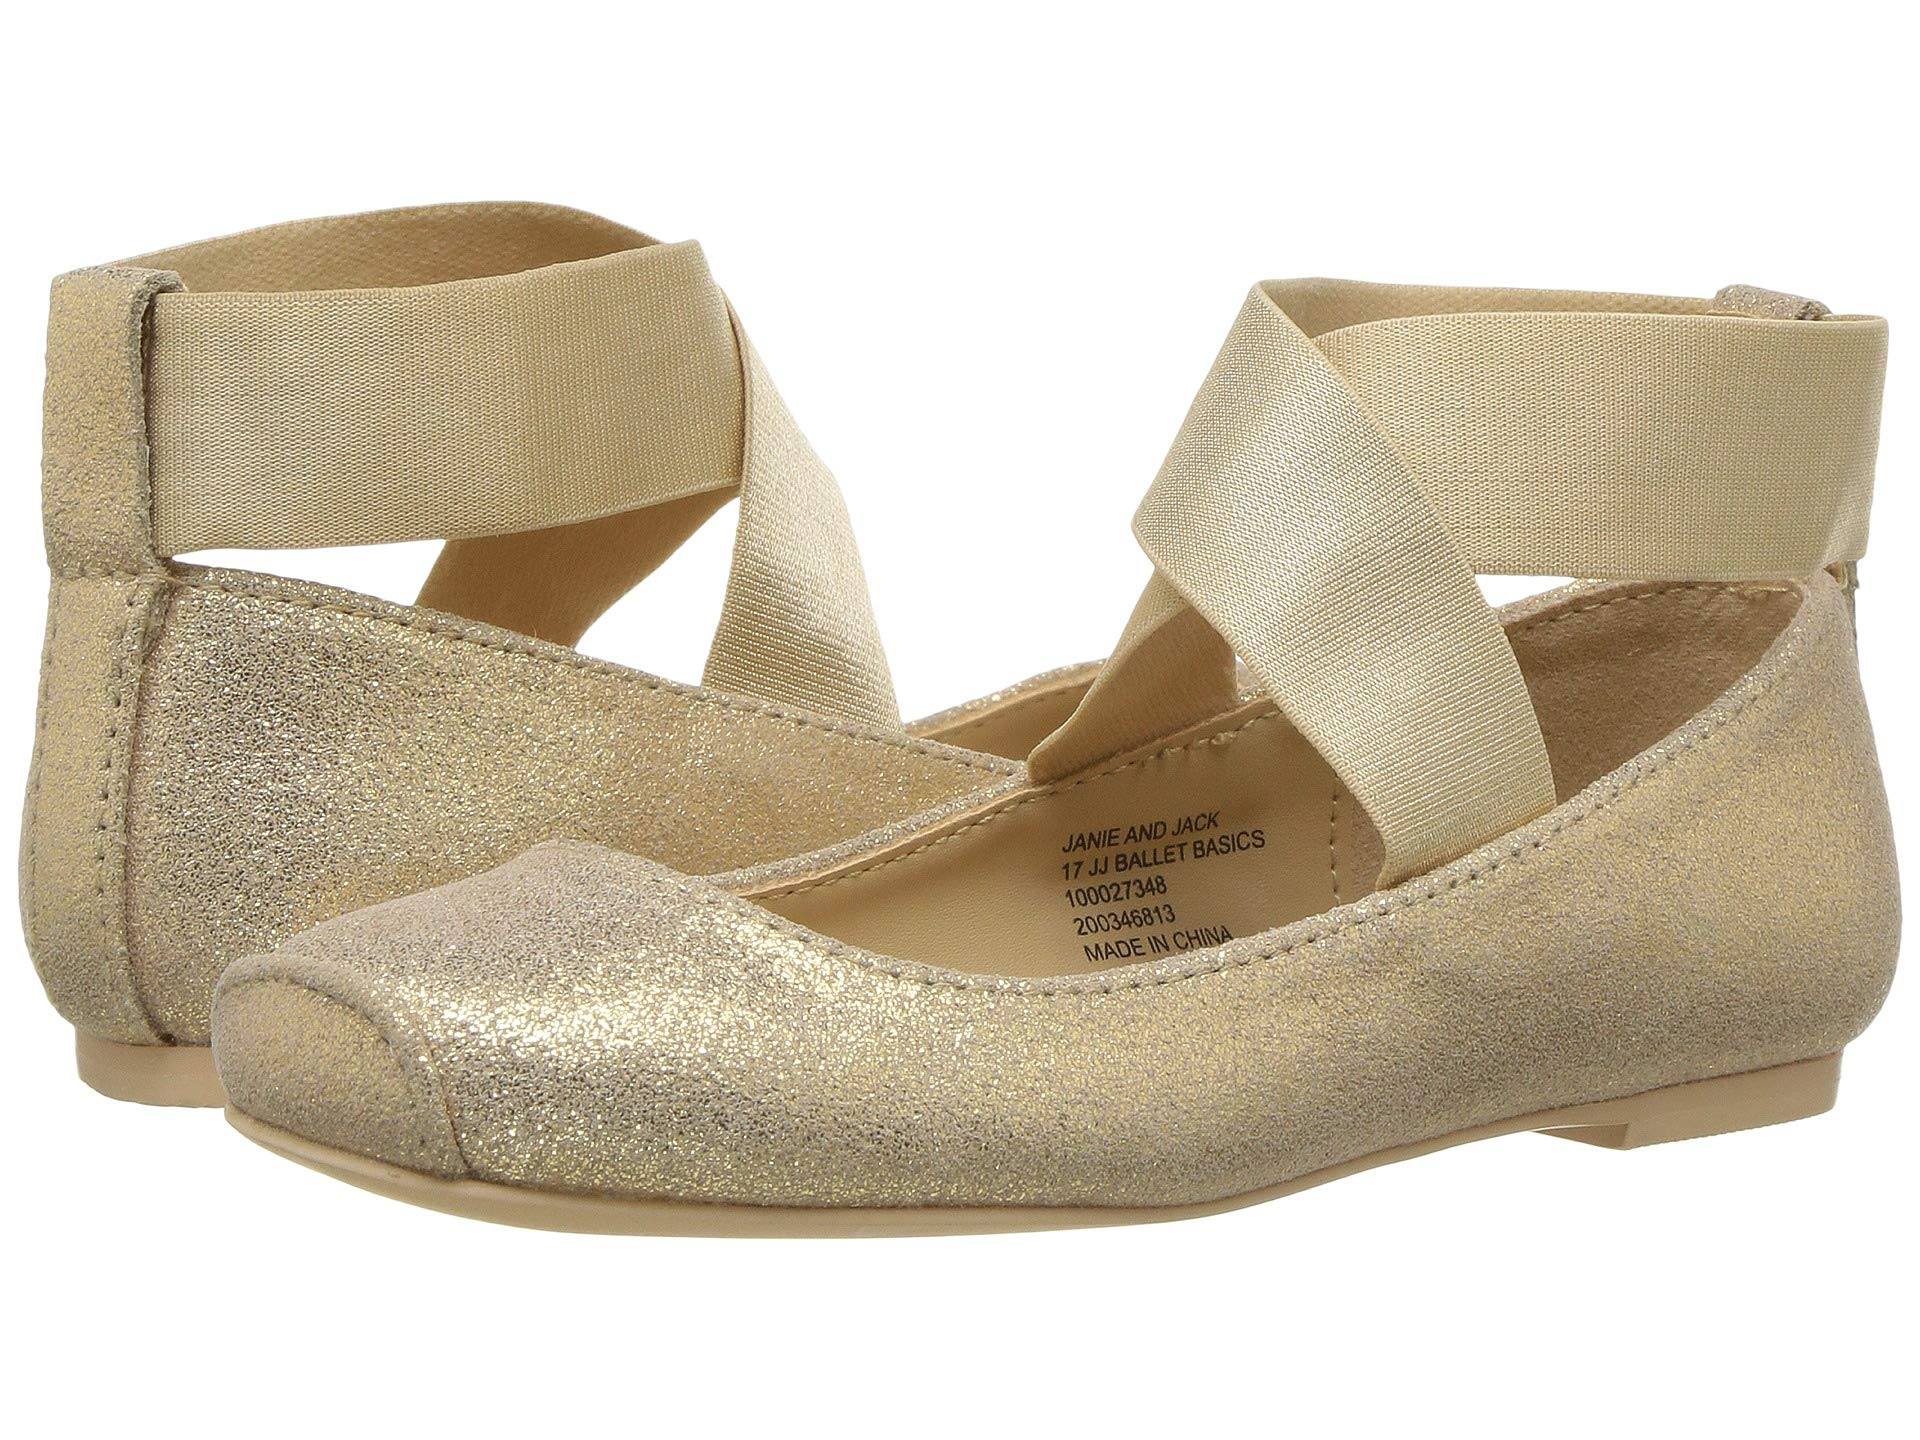 janie and jack metallic ballet flat (toddler/little kid/big kid)